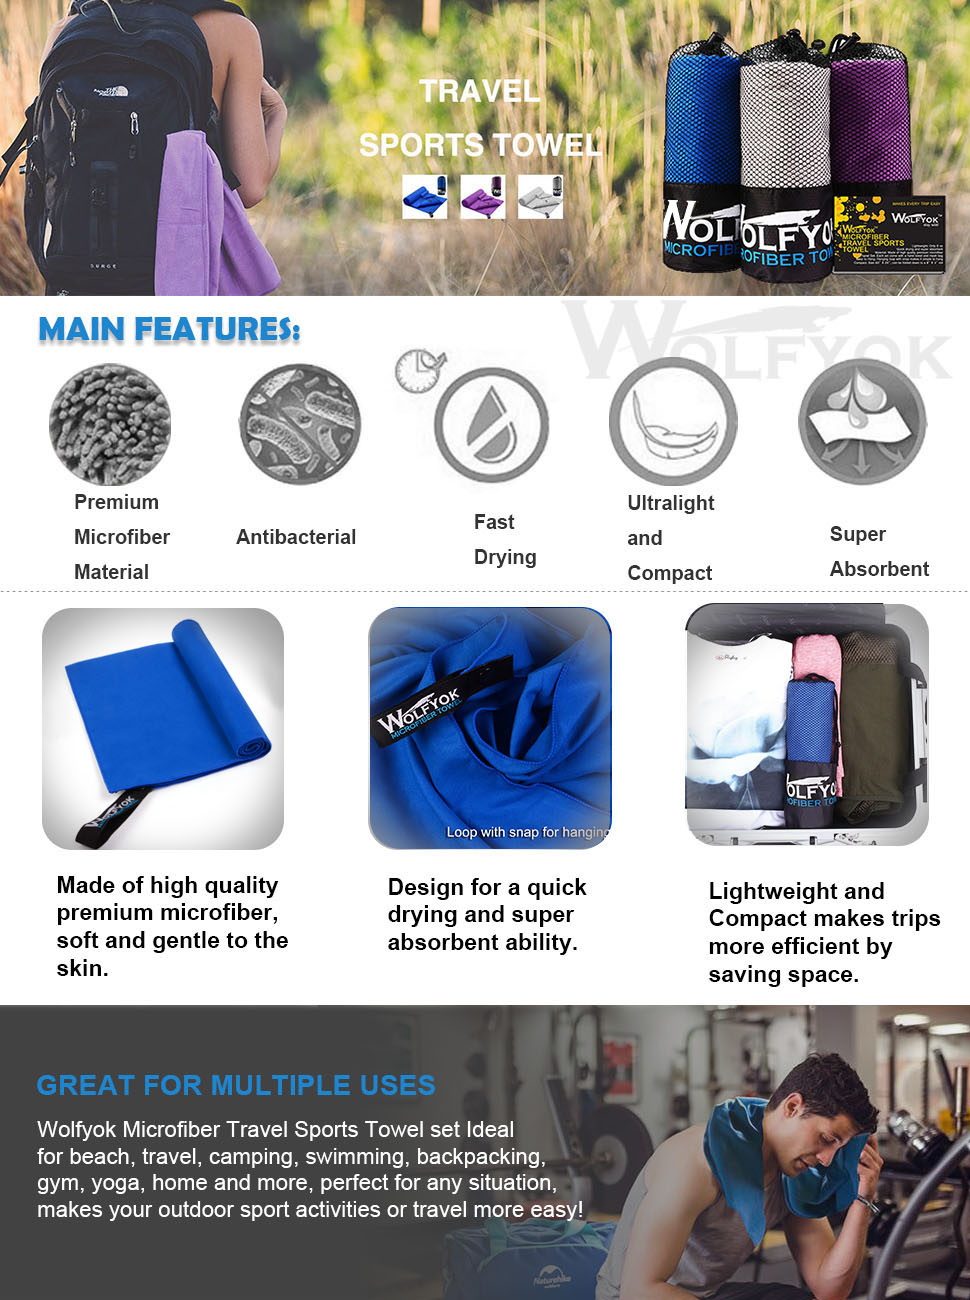 Audacious Usb Rechargeable Reflective Vest Backpack With Led Turn Signal Light Remote Control Outdoor Sport Safety Bag Gear Bicycle Accessories